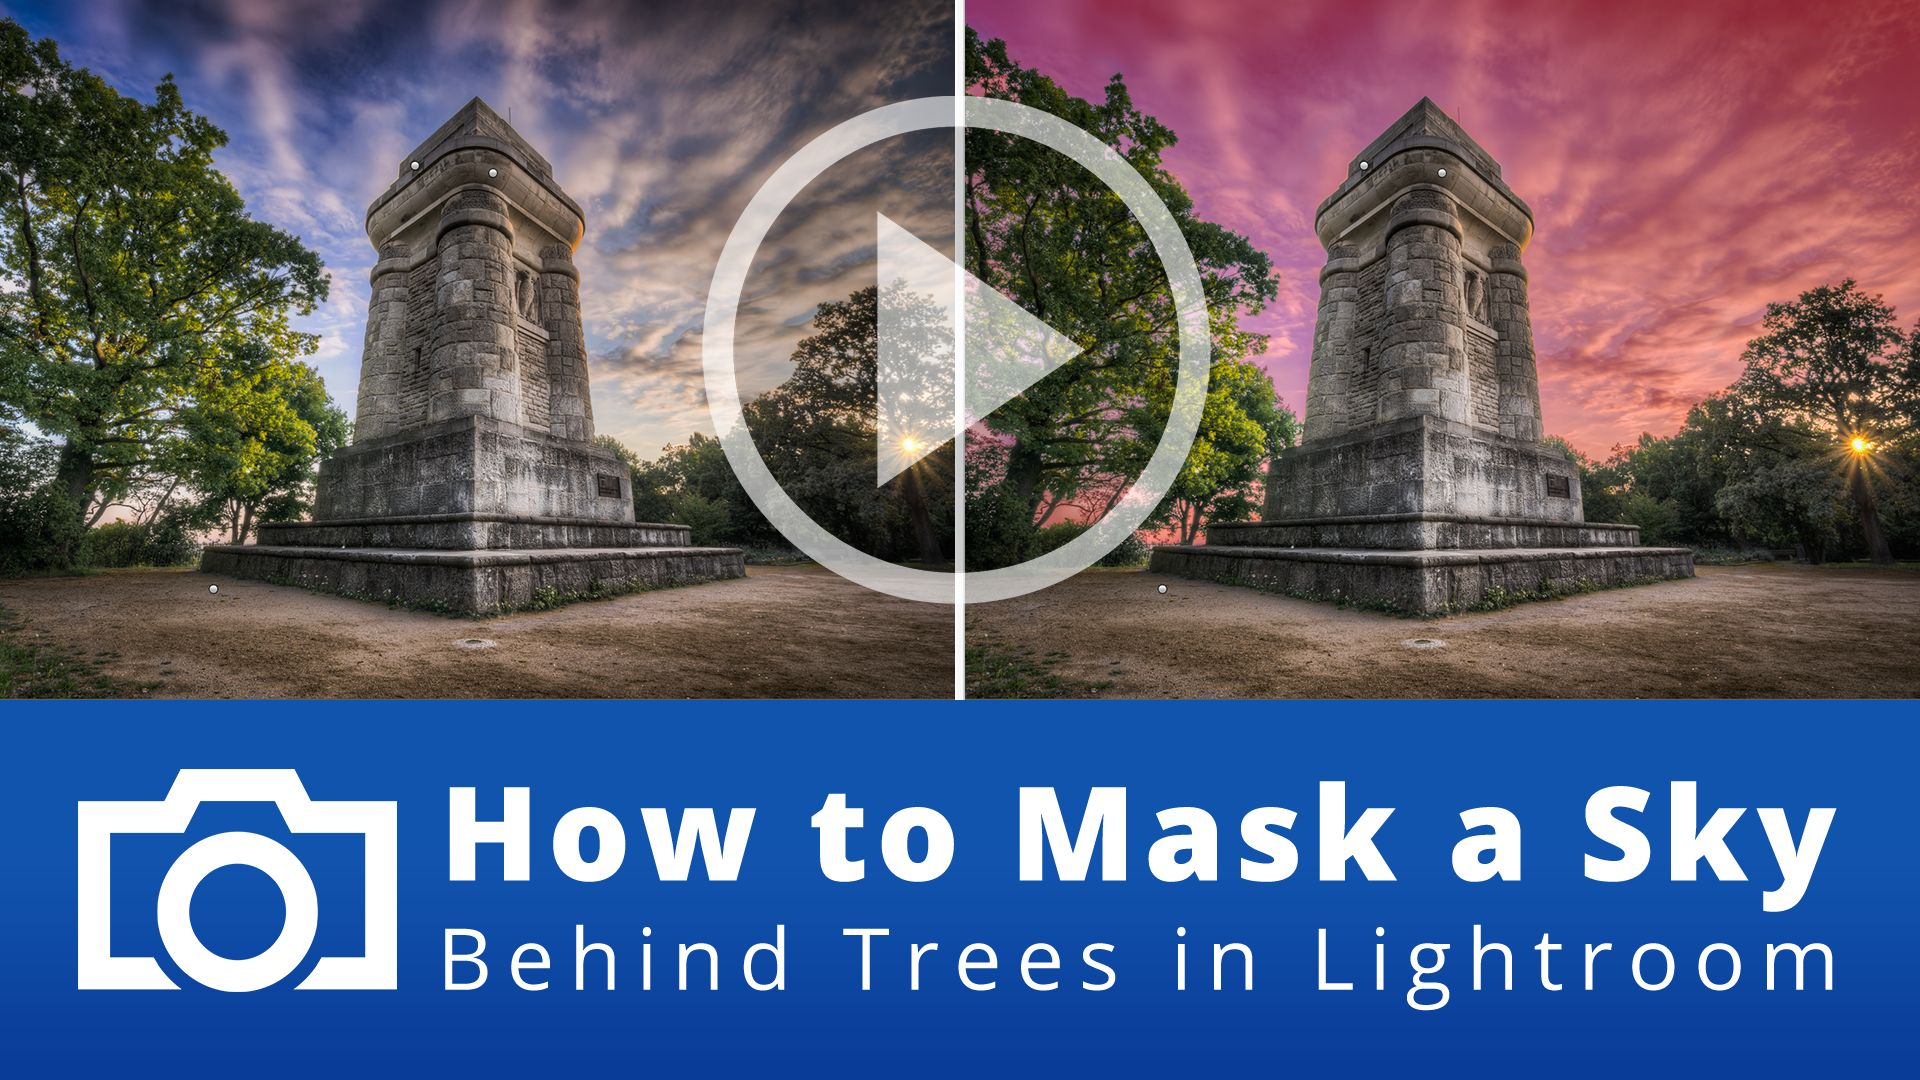 How to Mask a Sky Behind Trees in Lightroom